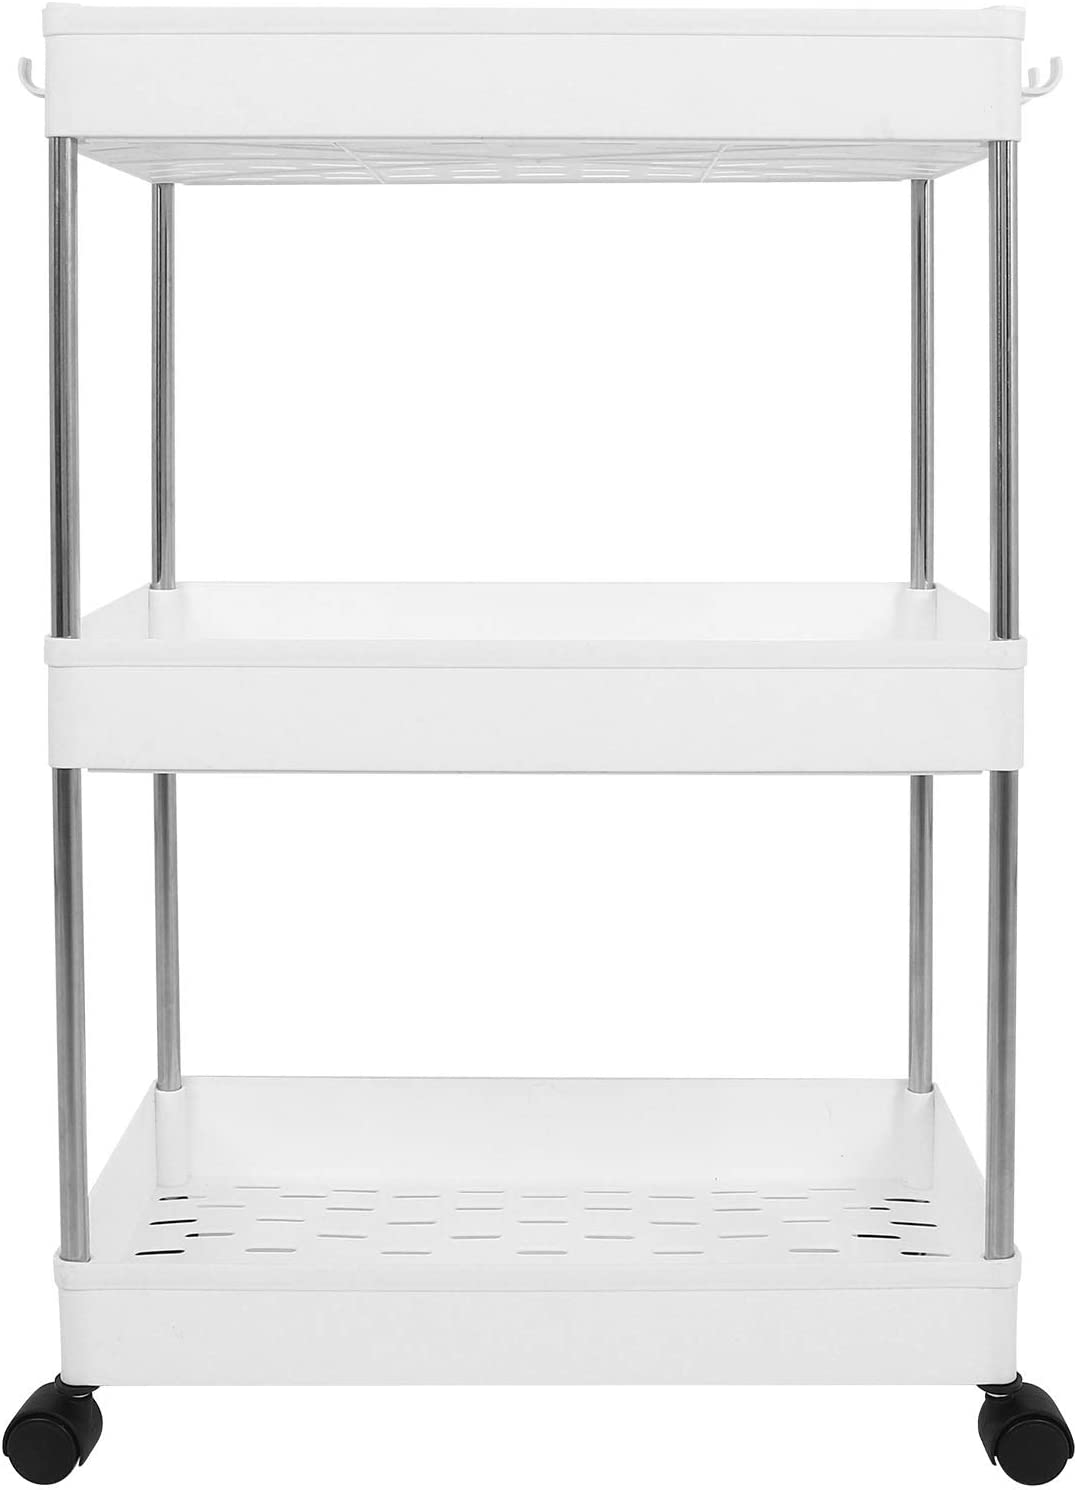 LSAR Now Cheap bargain on sale Trolley Cart Mobile Rack Storage